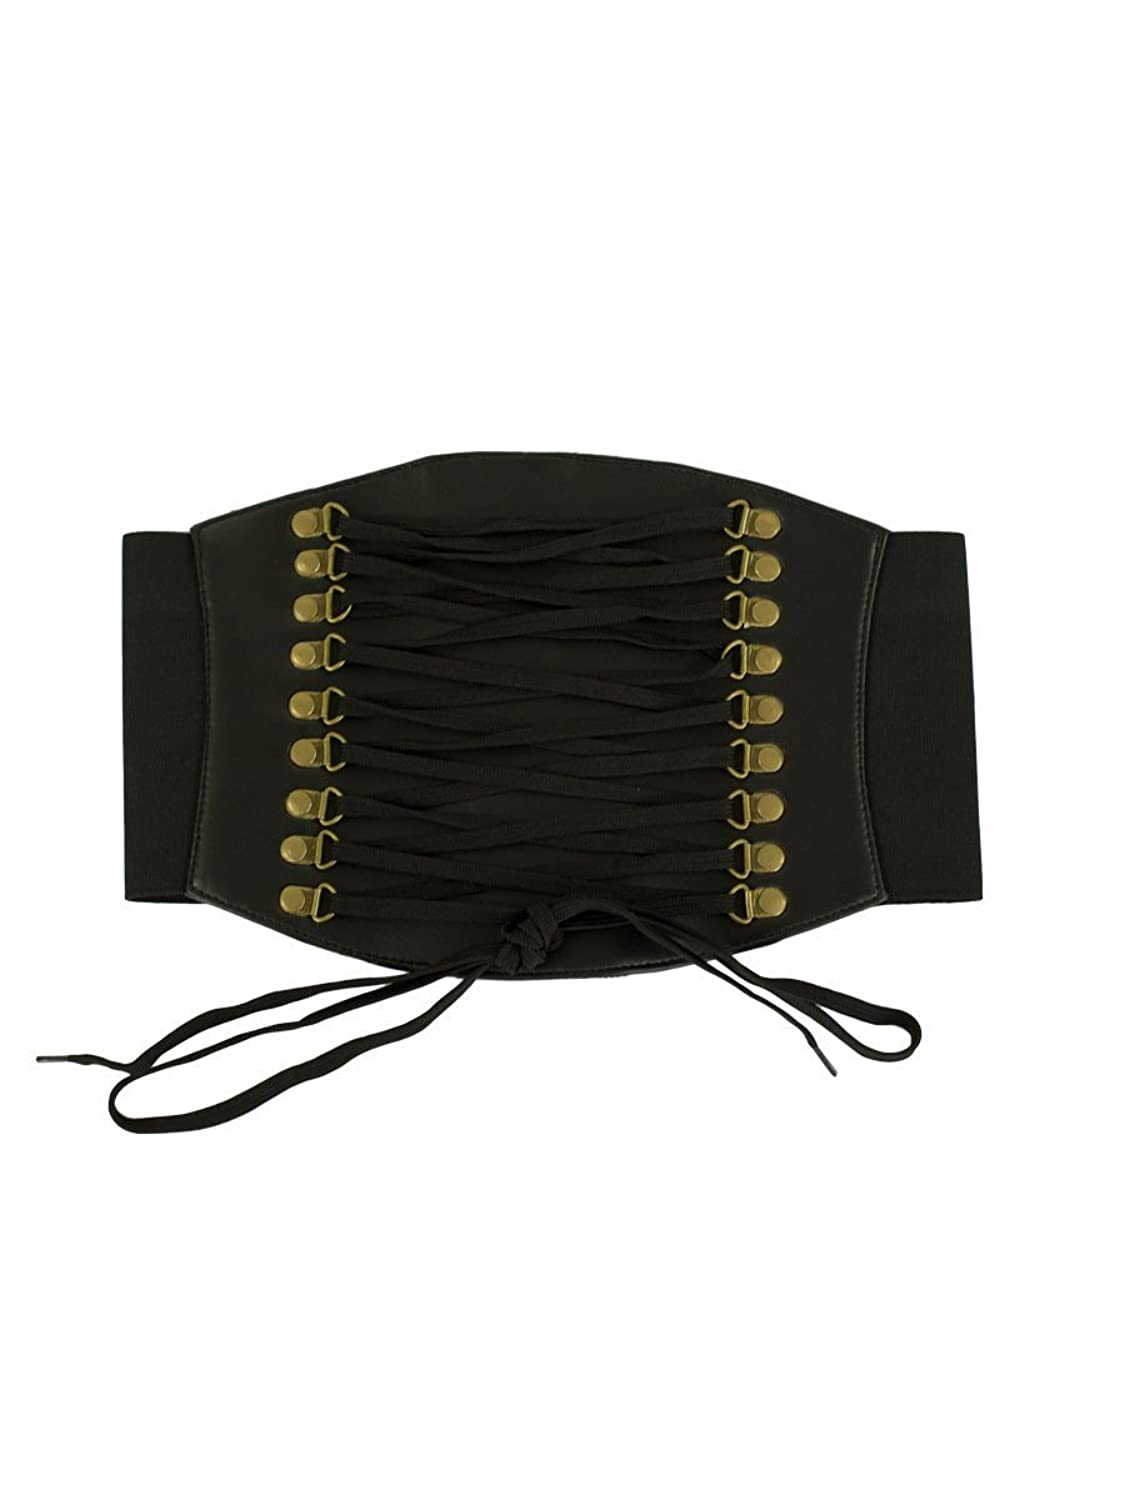 A History of Belts 1920-1960 Orchard Corset Faux Leather Corset Belt CB-915 $24.99 AT vintagedancer.com